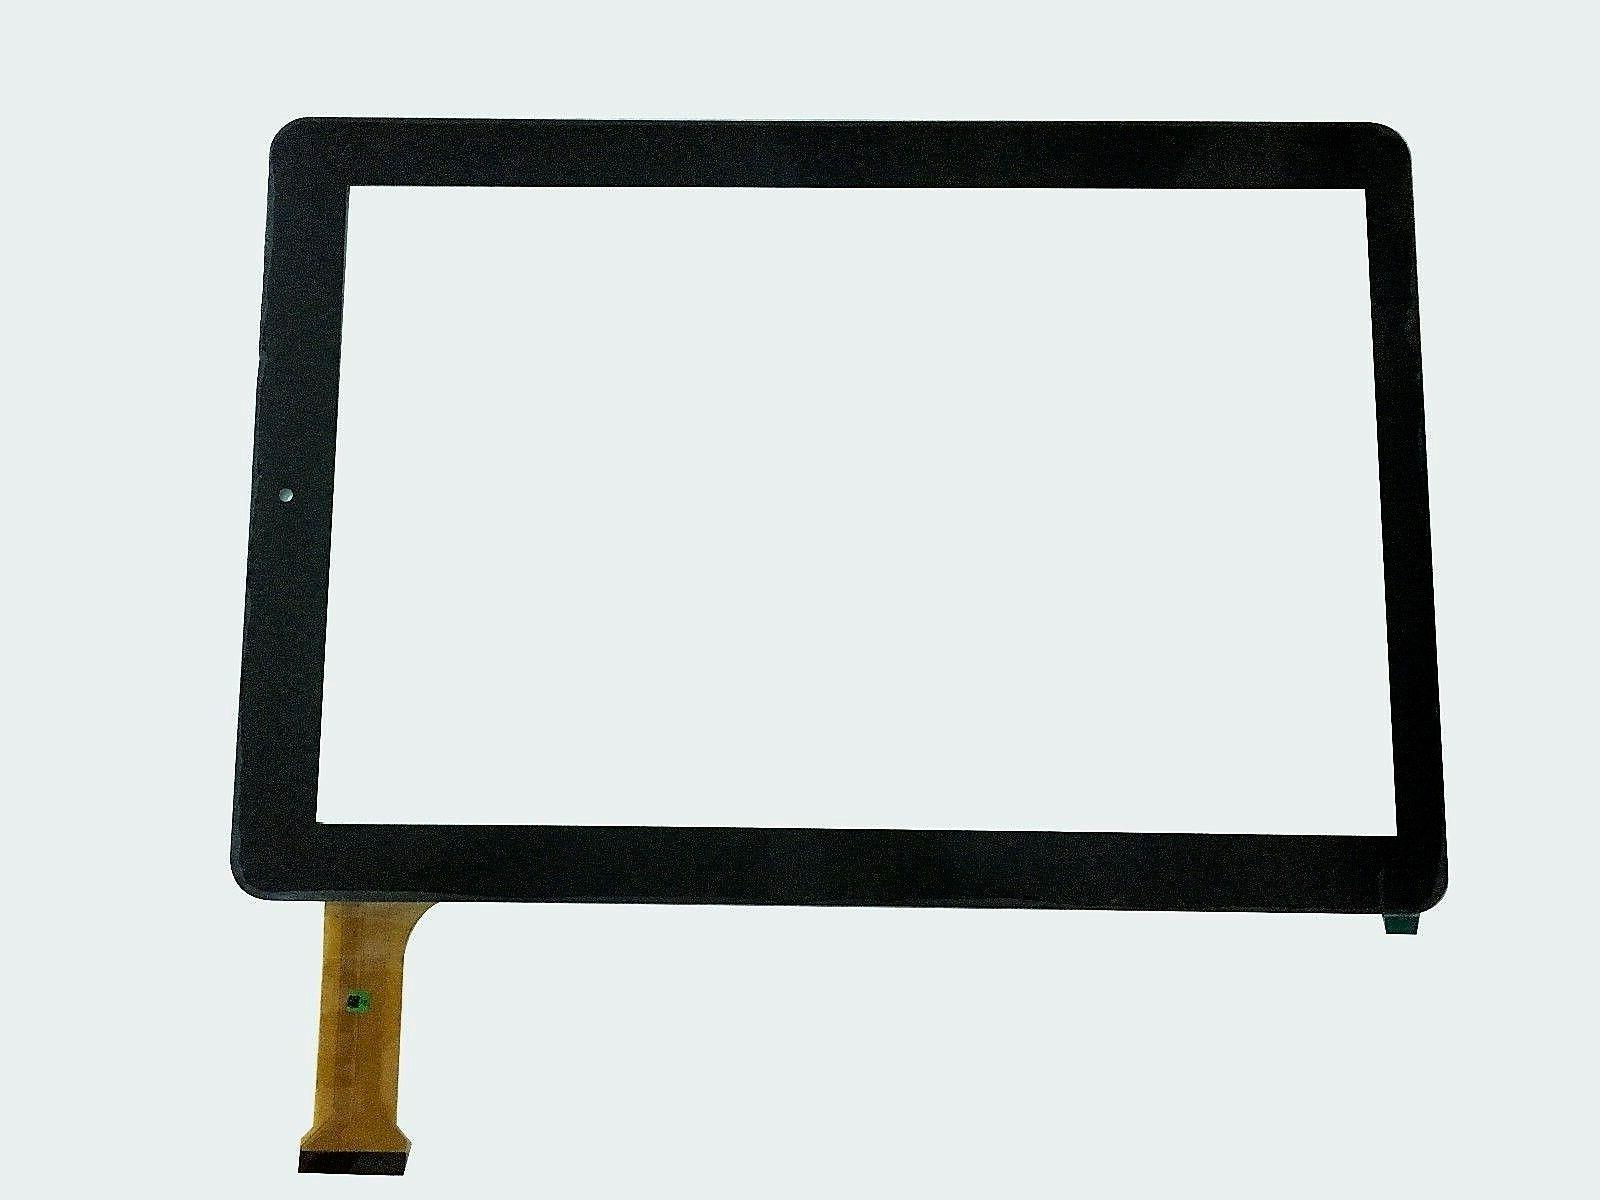 Digitizer Touch Screen for RCA Pro12 Pro 12 RCT6223W97/CT922